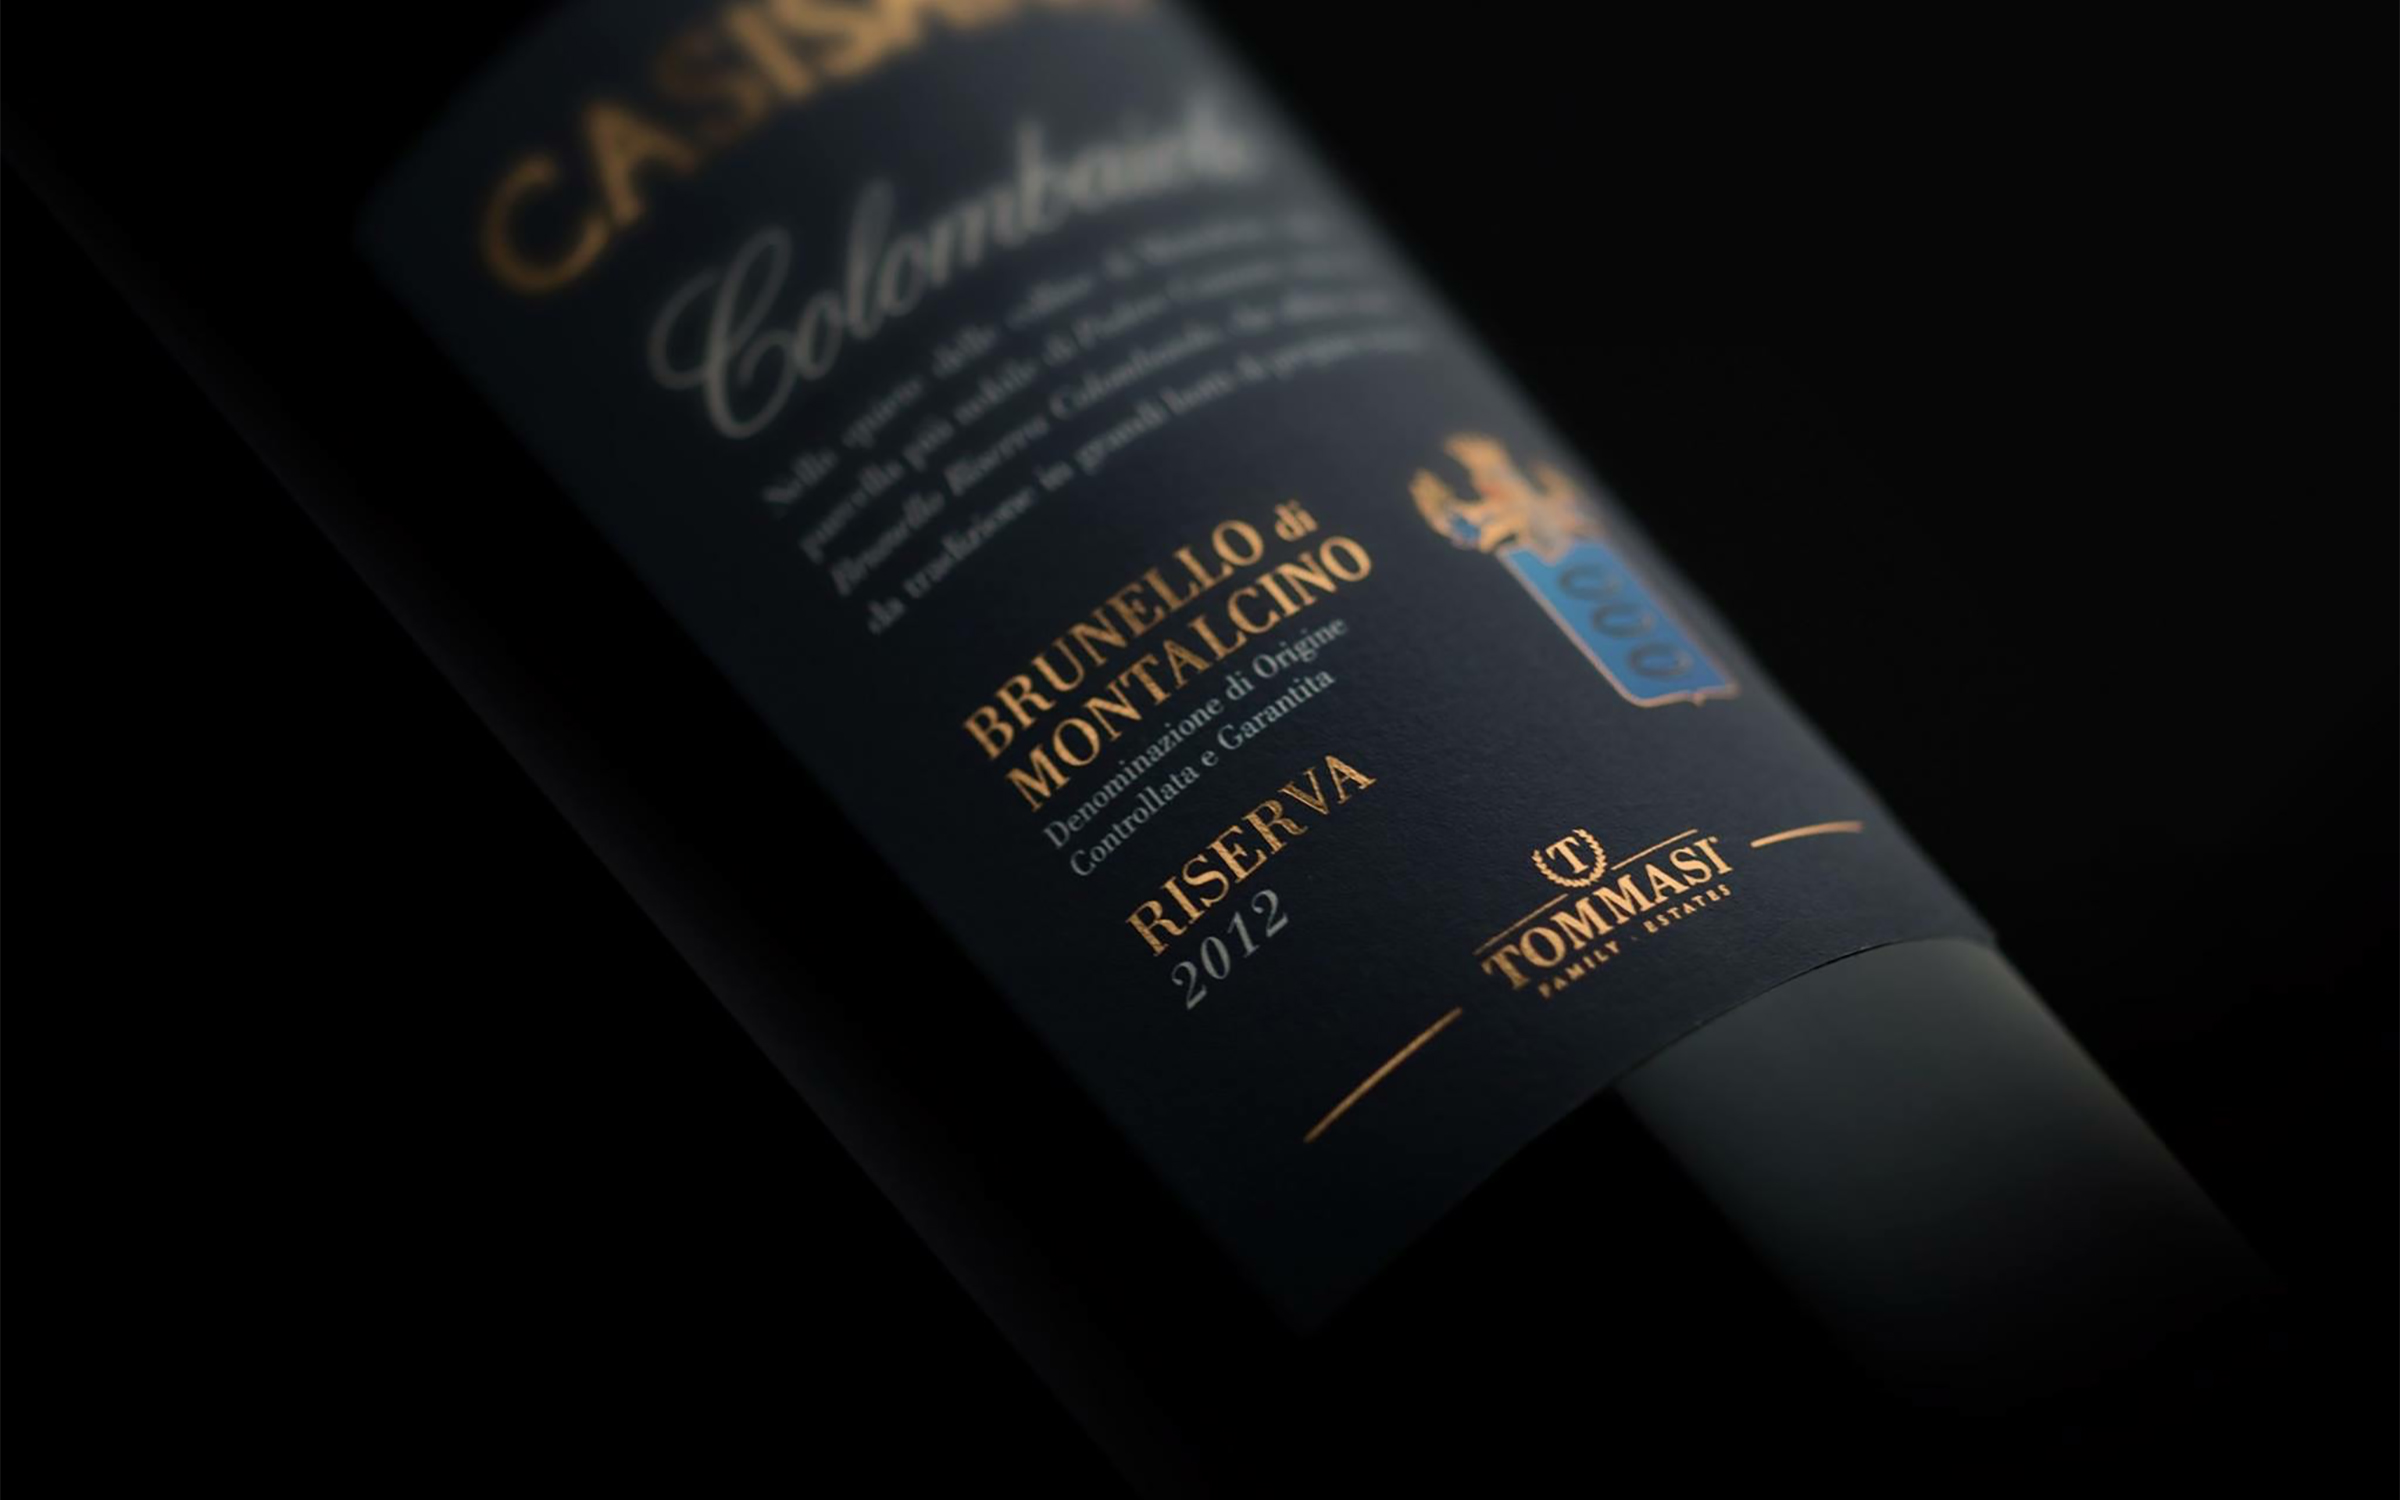 Colombaiolo, an exceptional Brunello